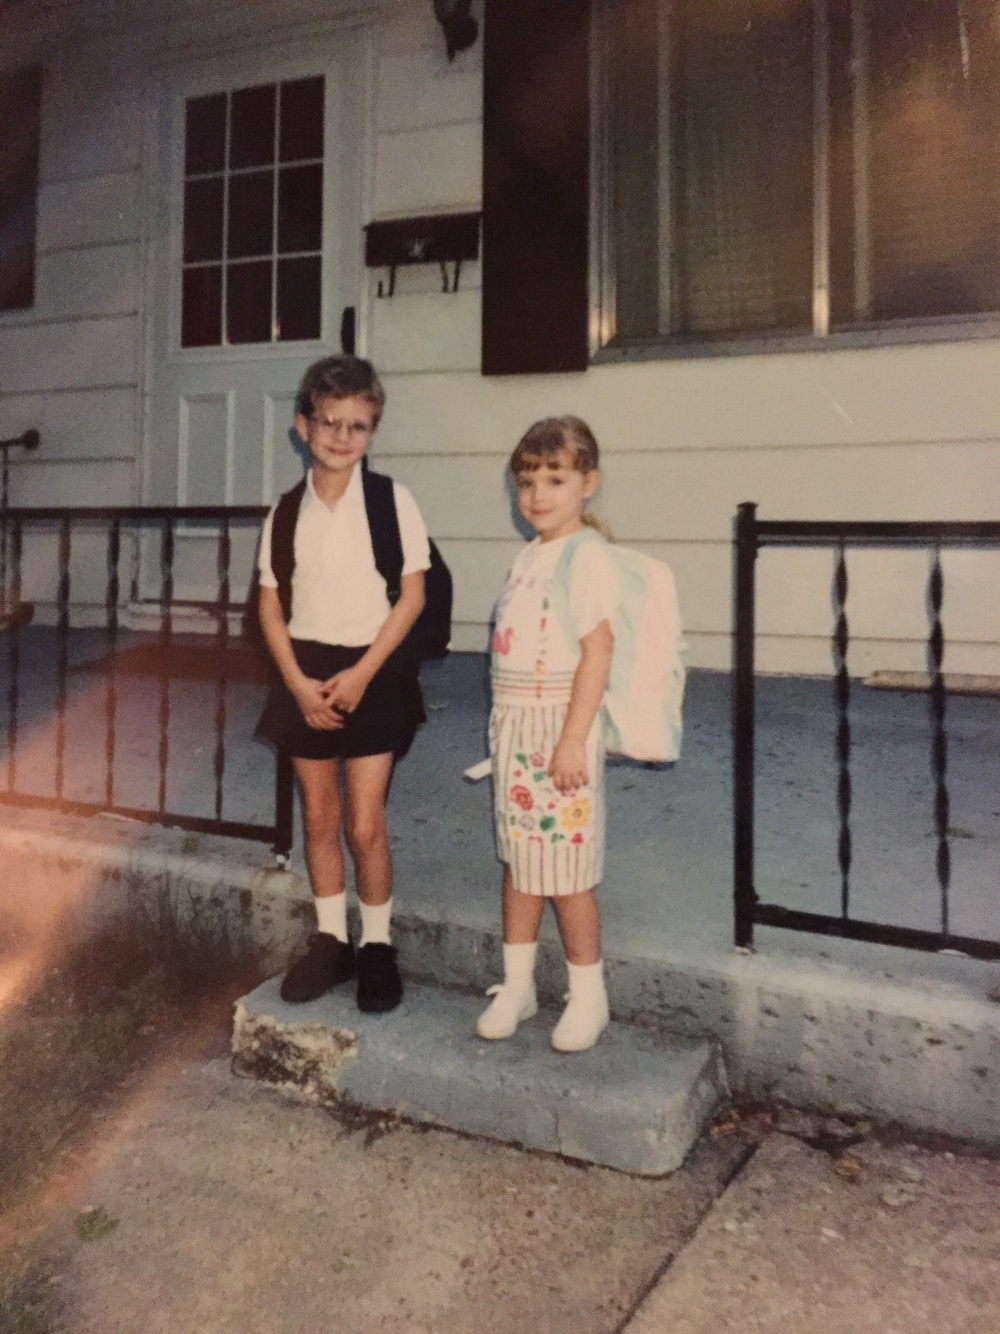 I always liked the first day of school. I'd guess this was second grade.